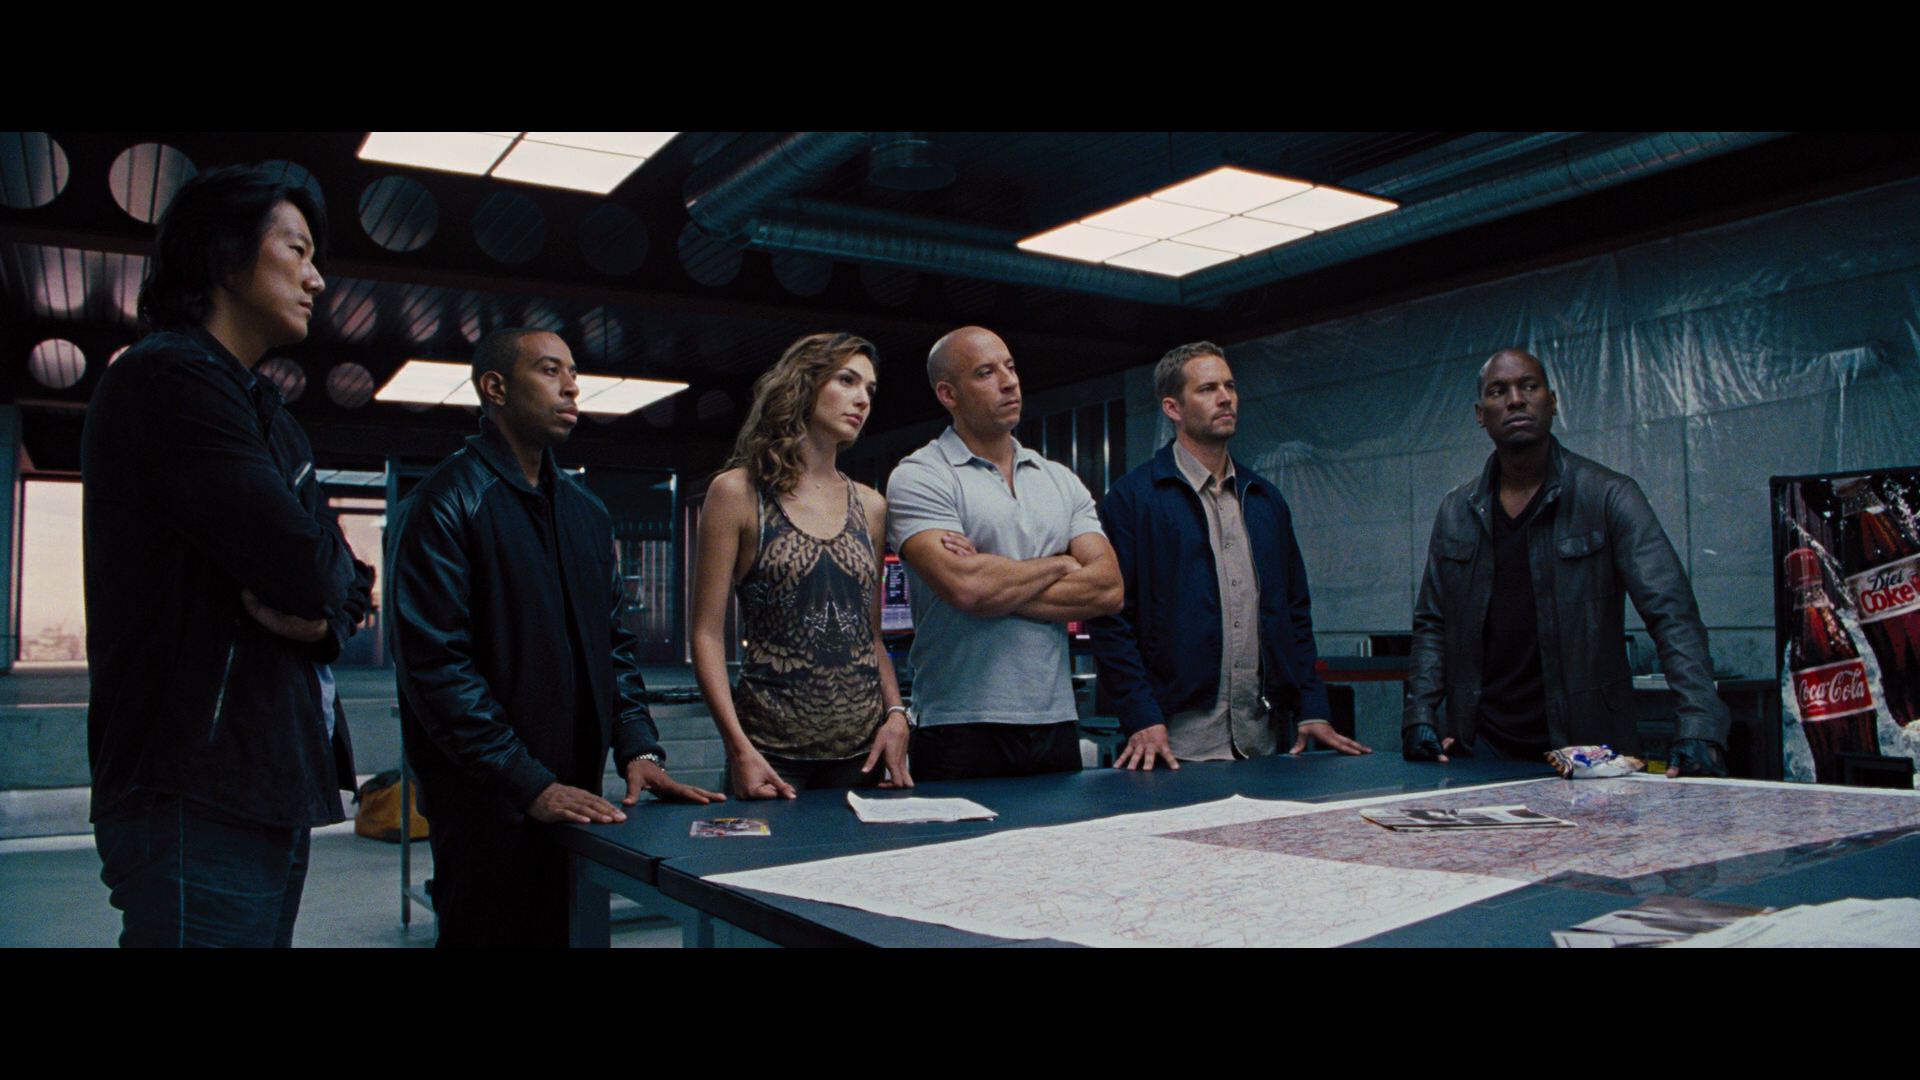 fast furious 6 ultra hd blu ray ultra hd review high def digest. Black Bedroom Furniture Sets. Home Design Ideas